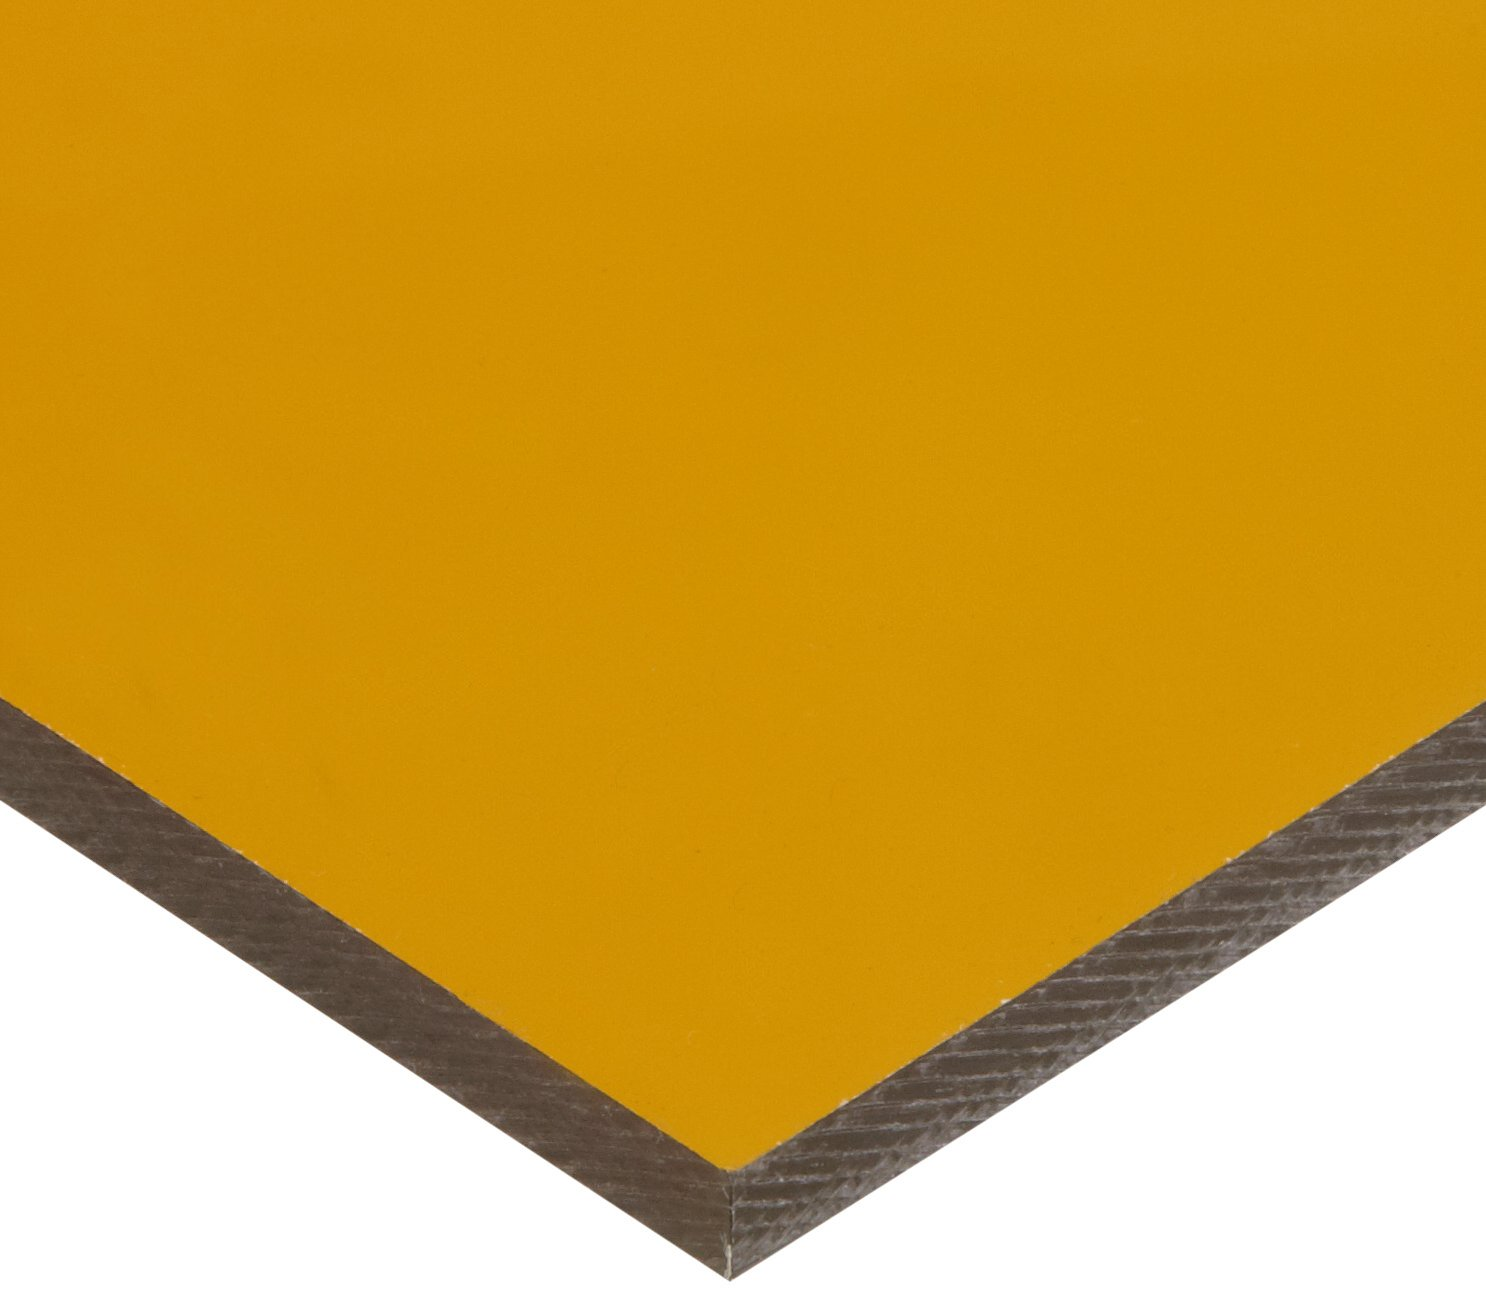 "PEI (Polyetherimide) Sheet, Opaque Natural, Standard Tolerance, ASTM D5205 PEI0113, 0.03"" Thickness, 12"" Width, 12"" Length"